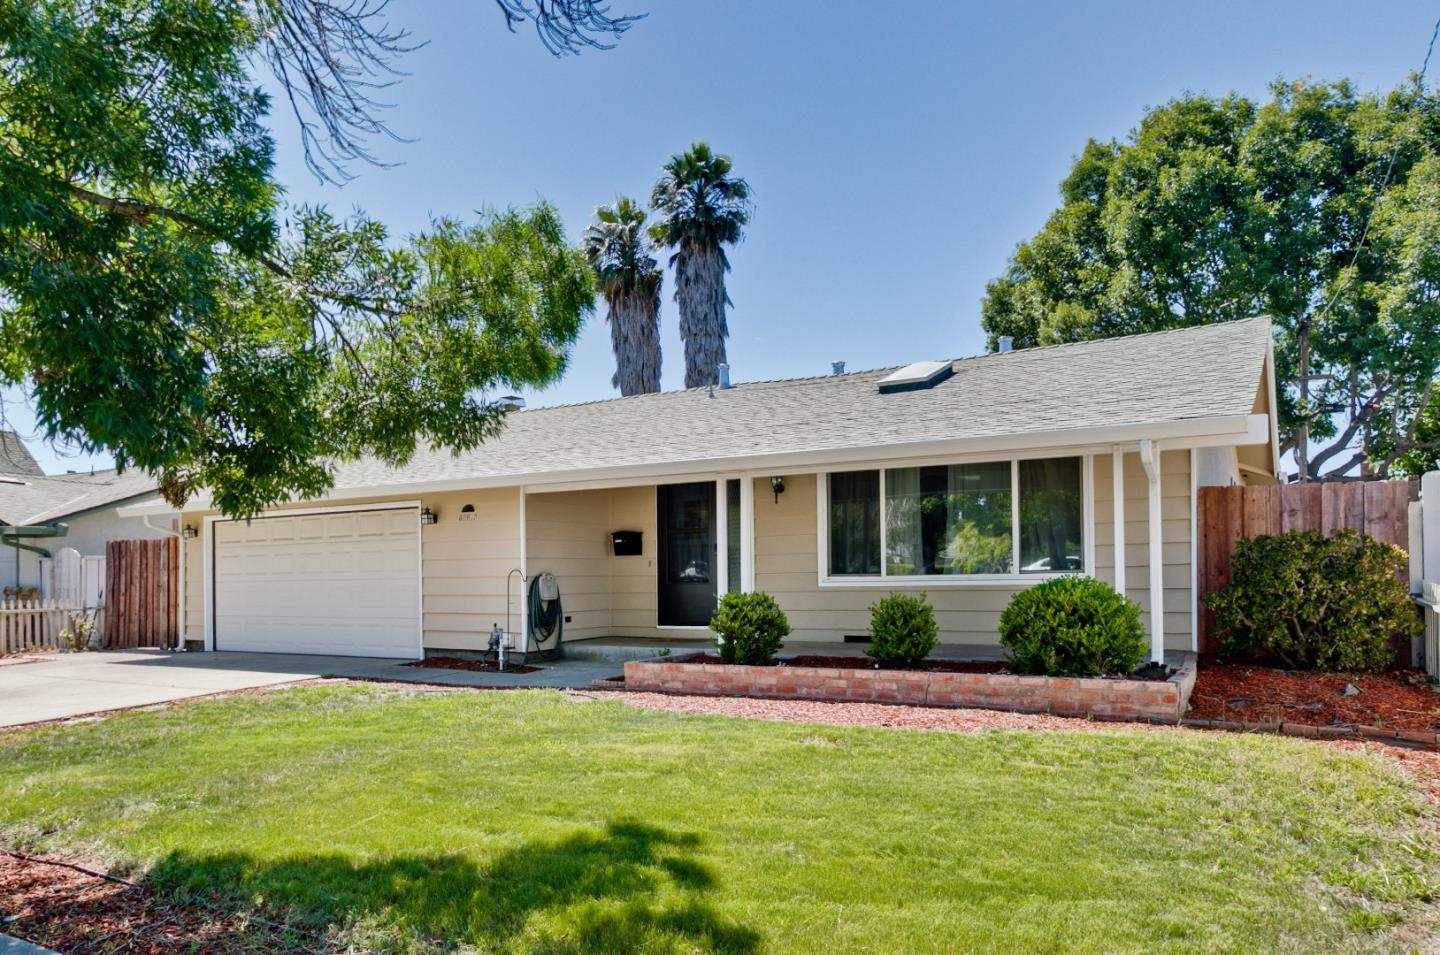 Additional photo for property listing at 40813 Robin Street  Fremont, California 94538 United States